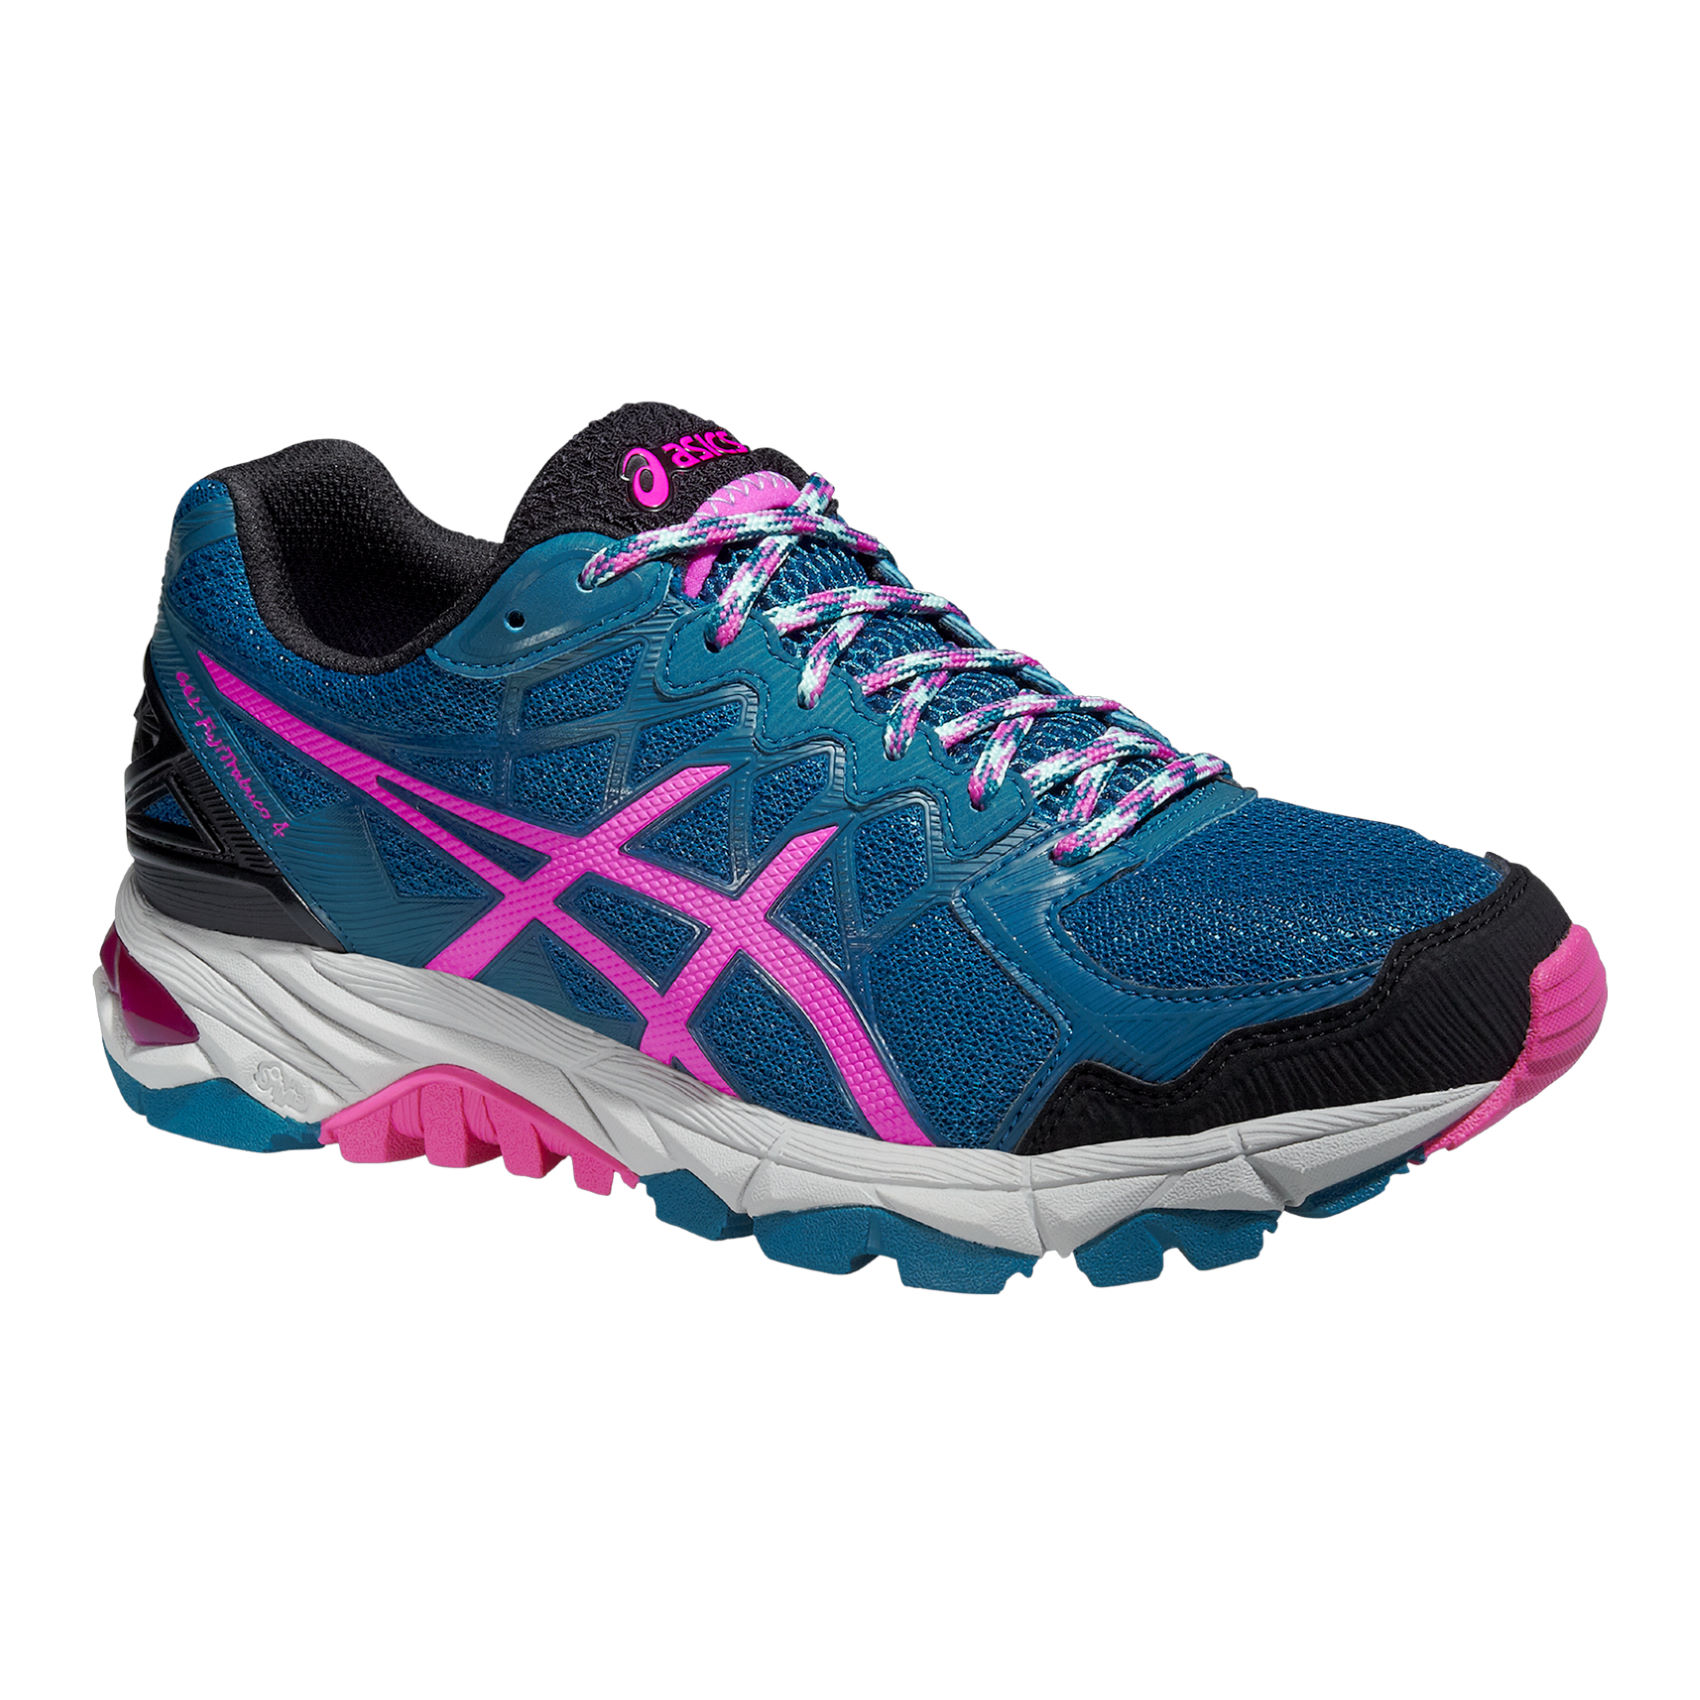 chaussures de running trail asics women 39 s gel fuji trabuco 4 shoes aw15 wiggle france. Black Bedroom Furniture Sets. Home Design Ideas